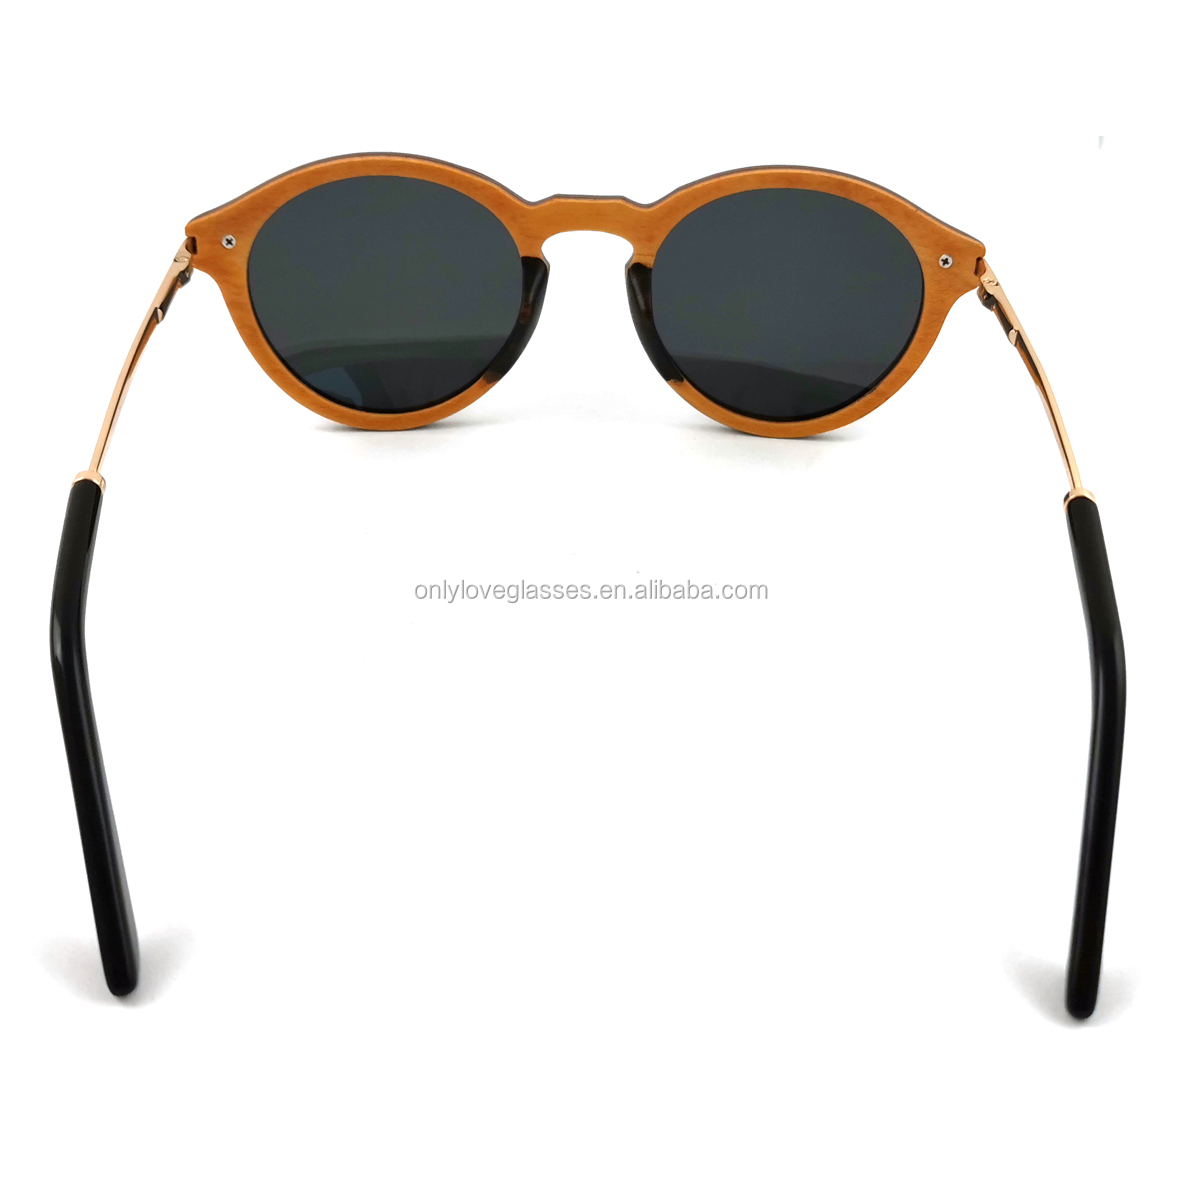 Bamboo sunglasses wood,skateboard wood sunglasses, wooden skateboard metal temple mixed sunglasses